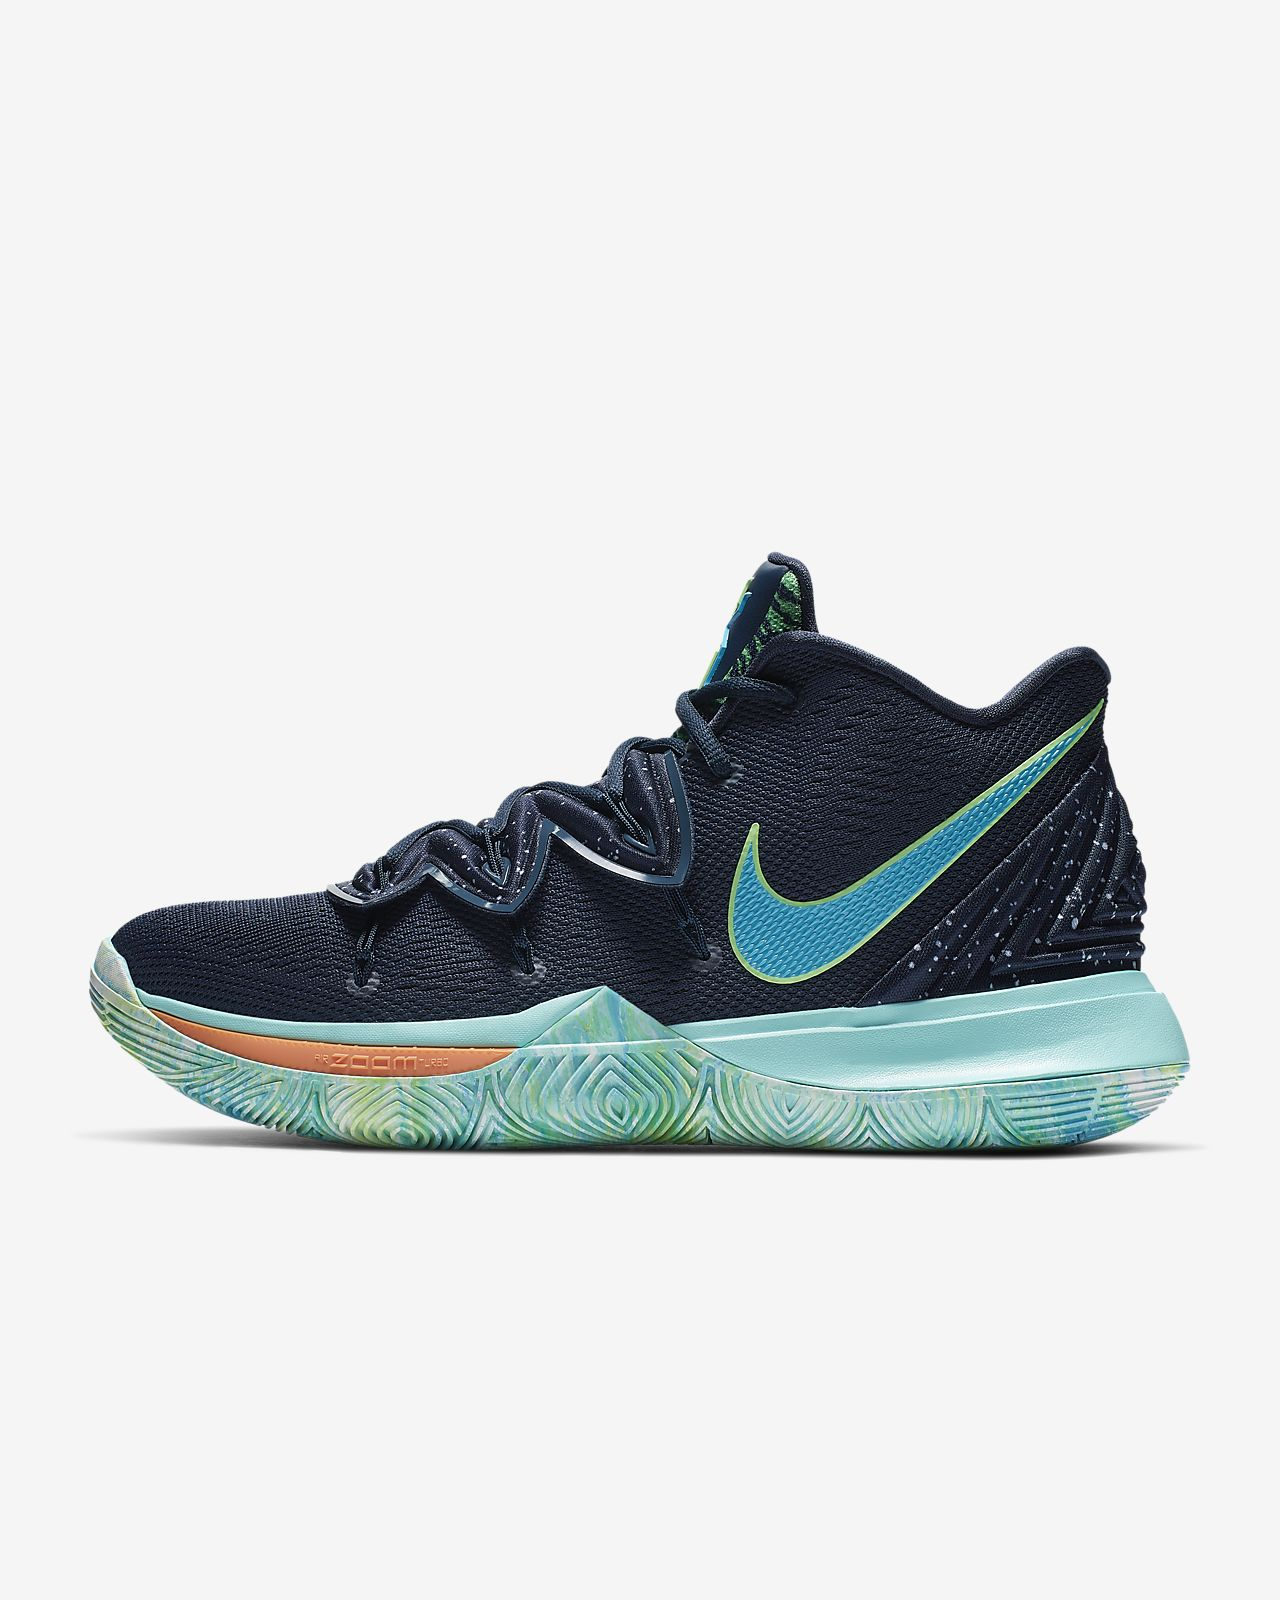 separation shoes e5eaa 7cd53 Low Resolution Chaussure Kyrie 5 Chaussure Kyrie 5